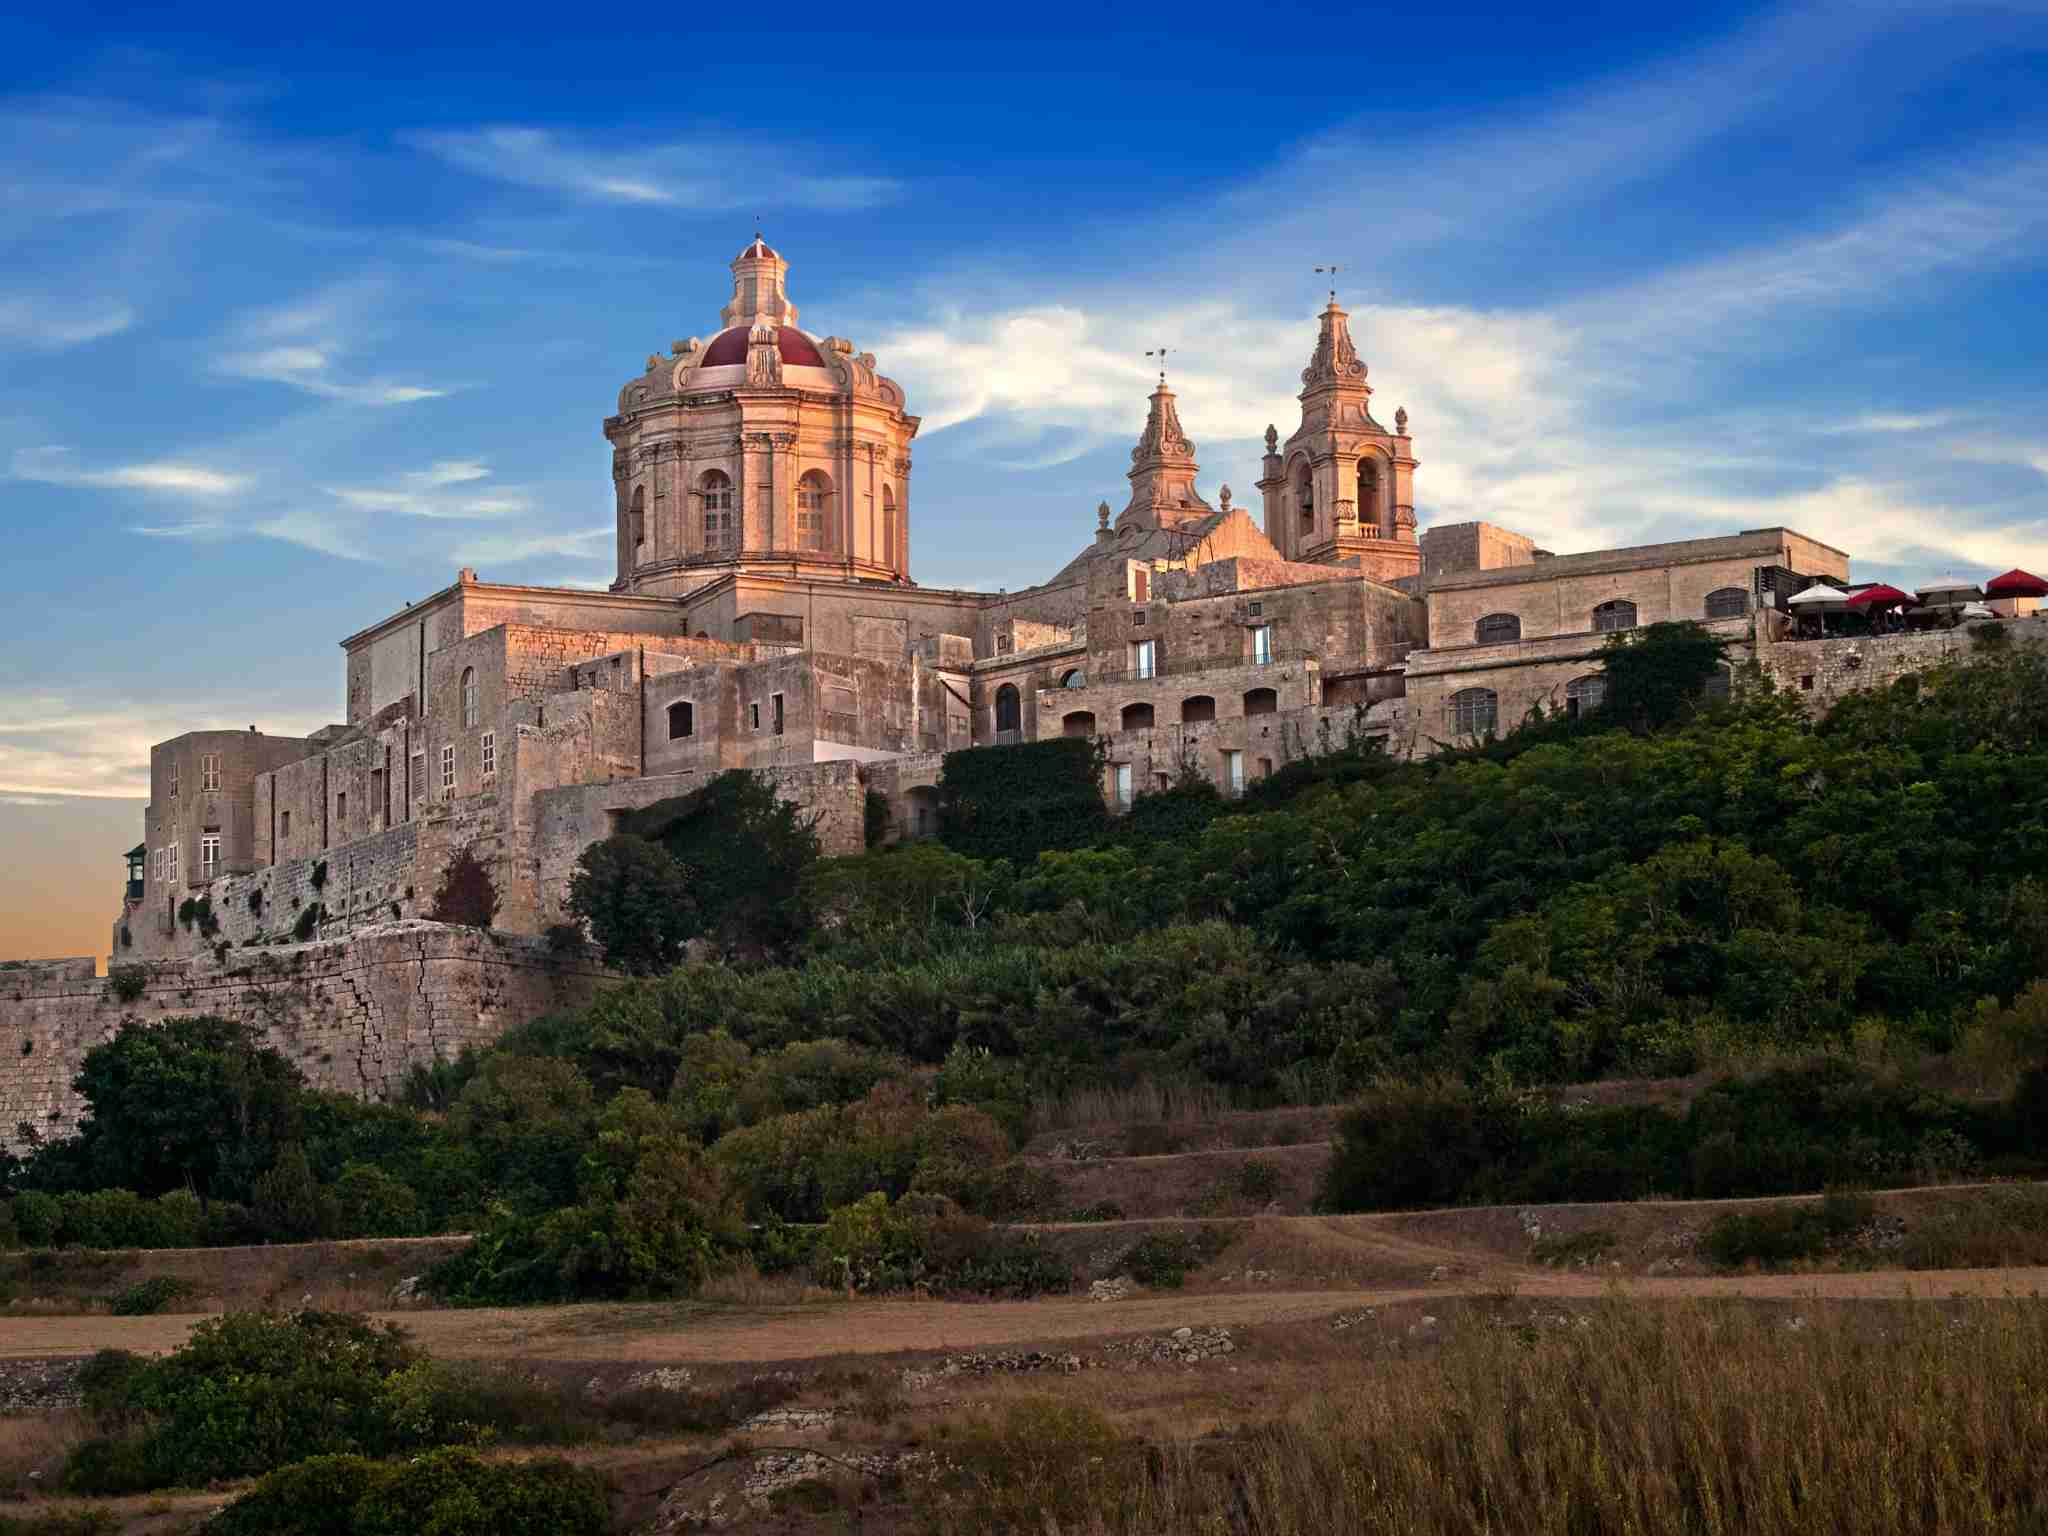 The walled city of Mdina, photo courtesy of Maltaguy1.